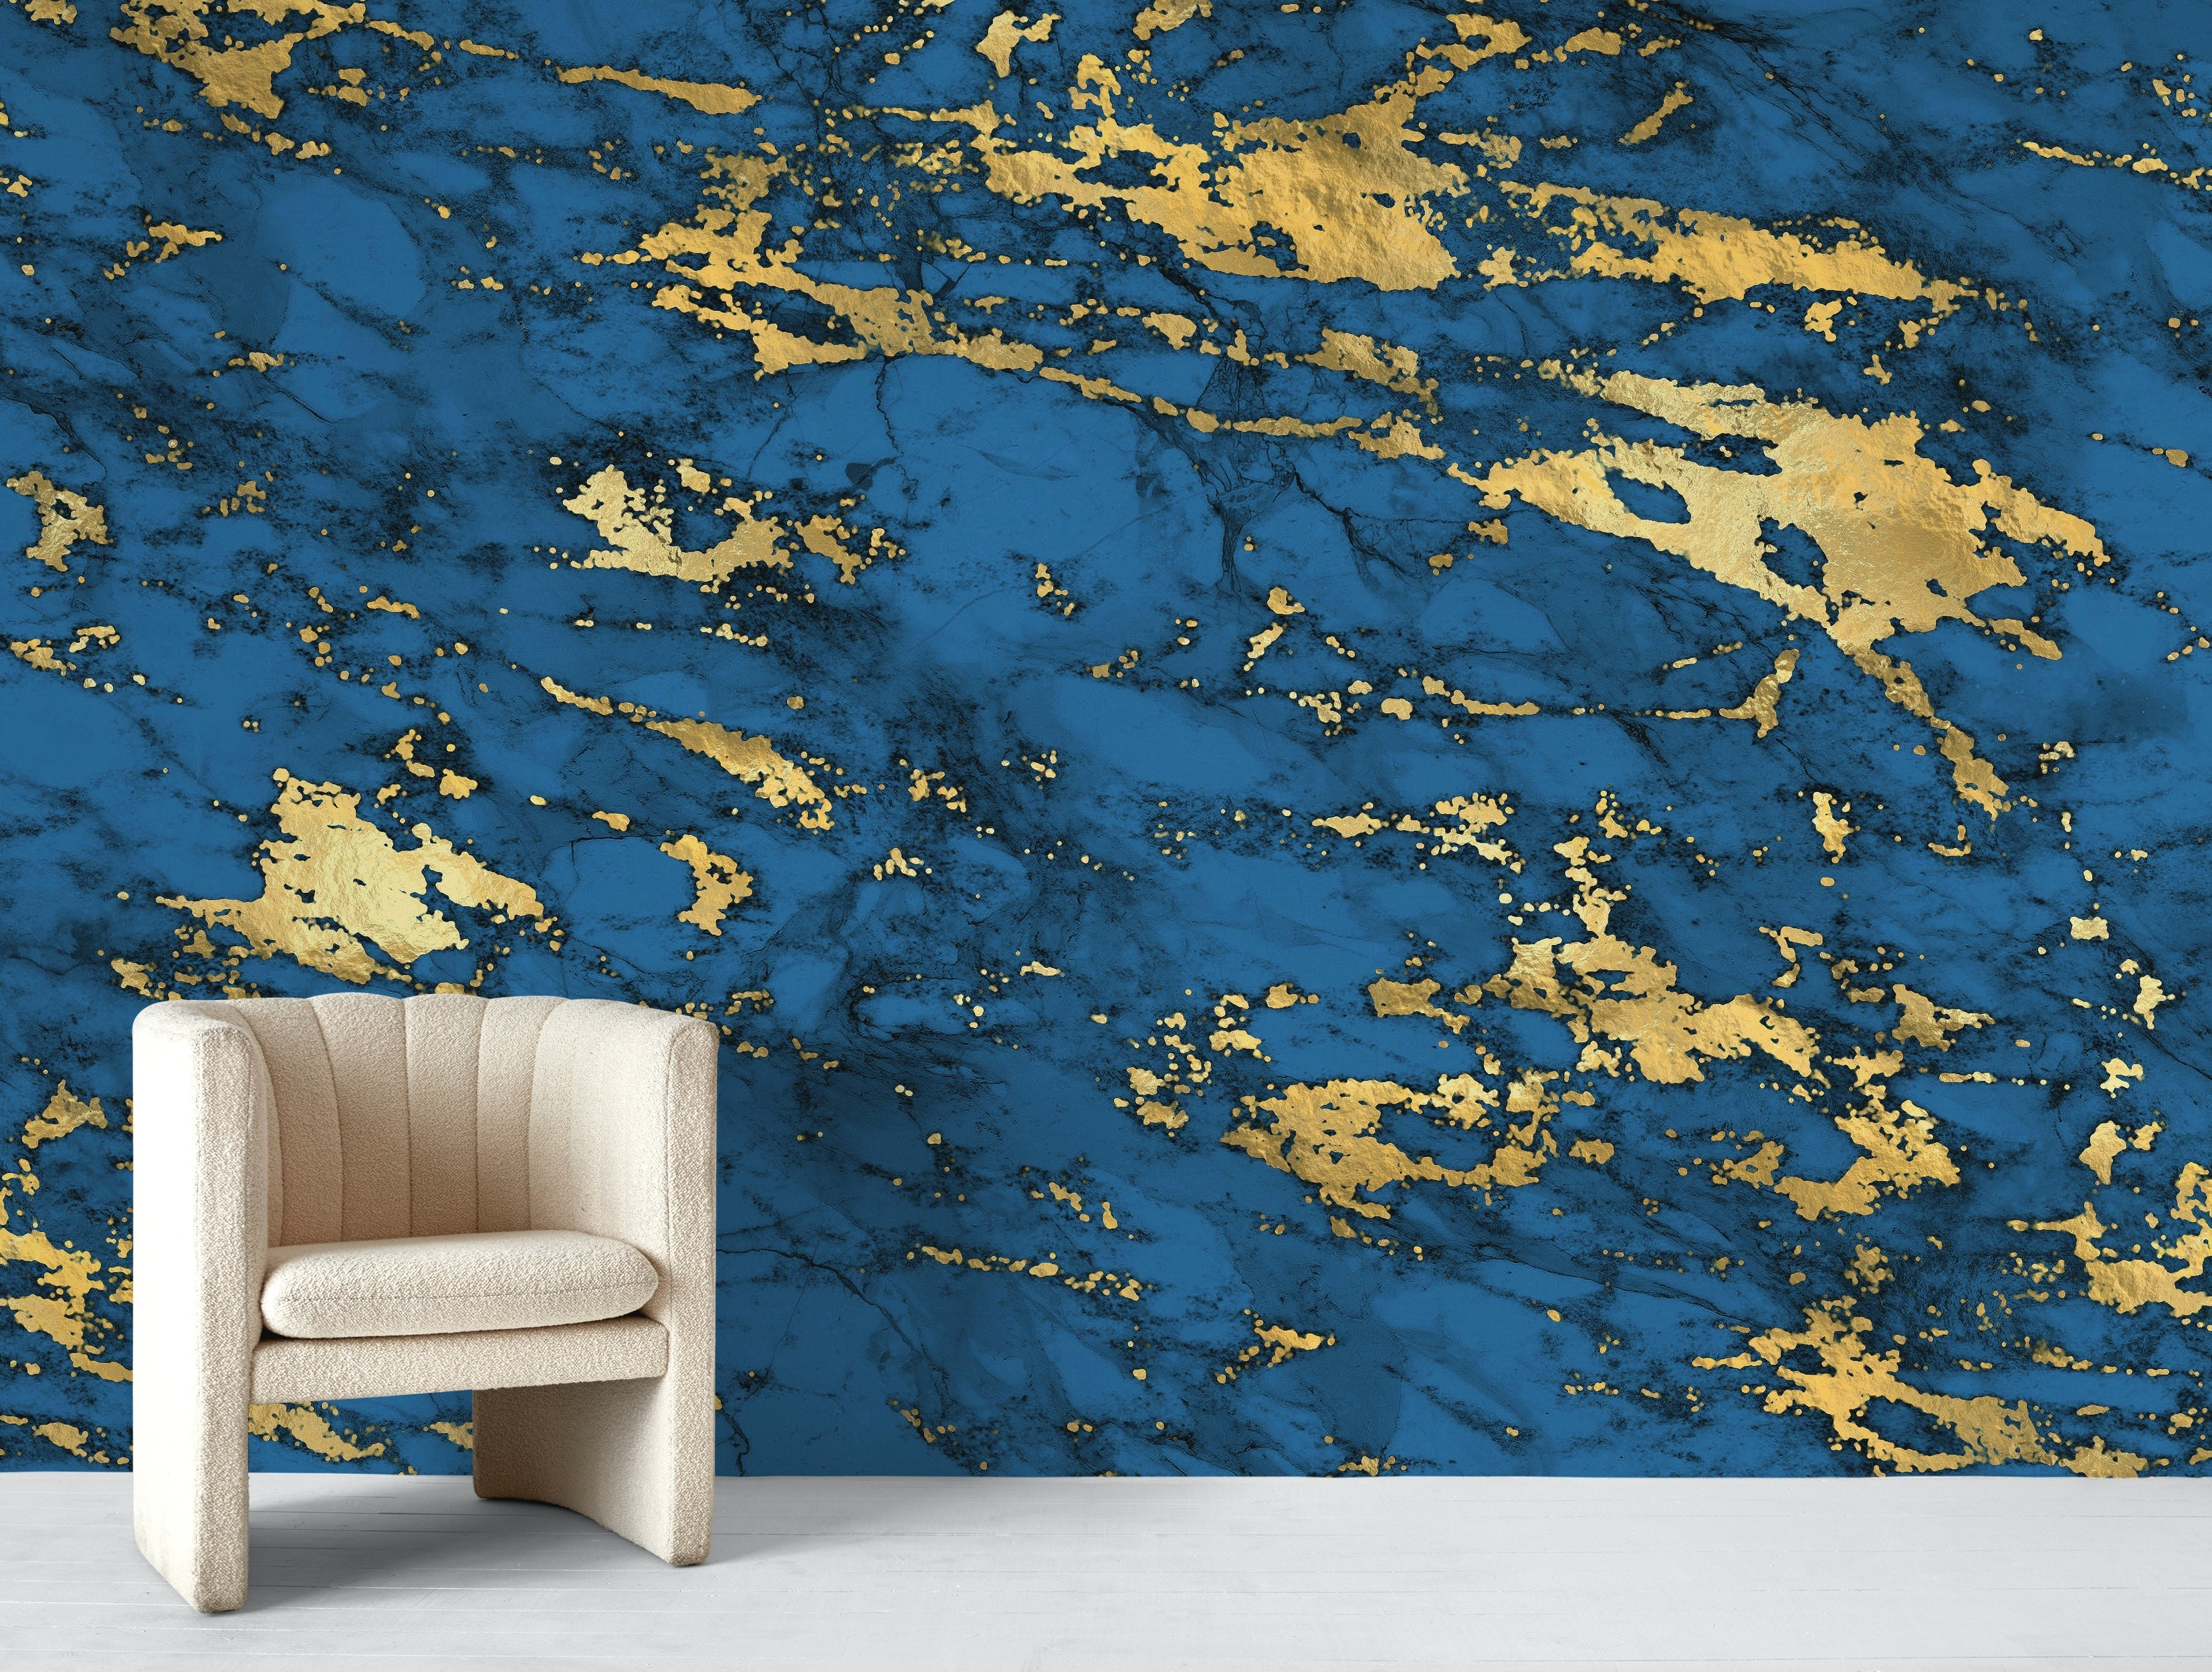 Buy Blue Gold Marble 05 Wallpaper Free Us Shipping At Happywall Com